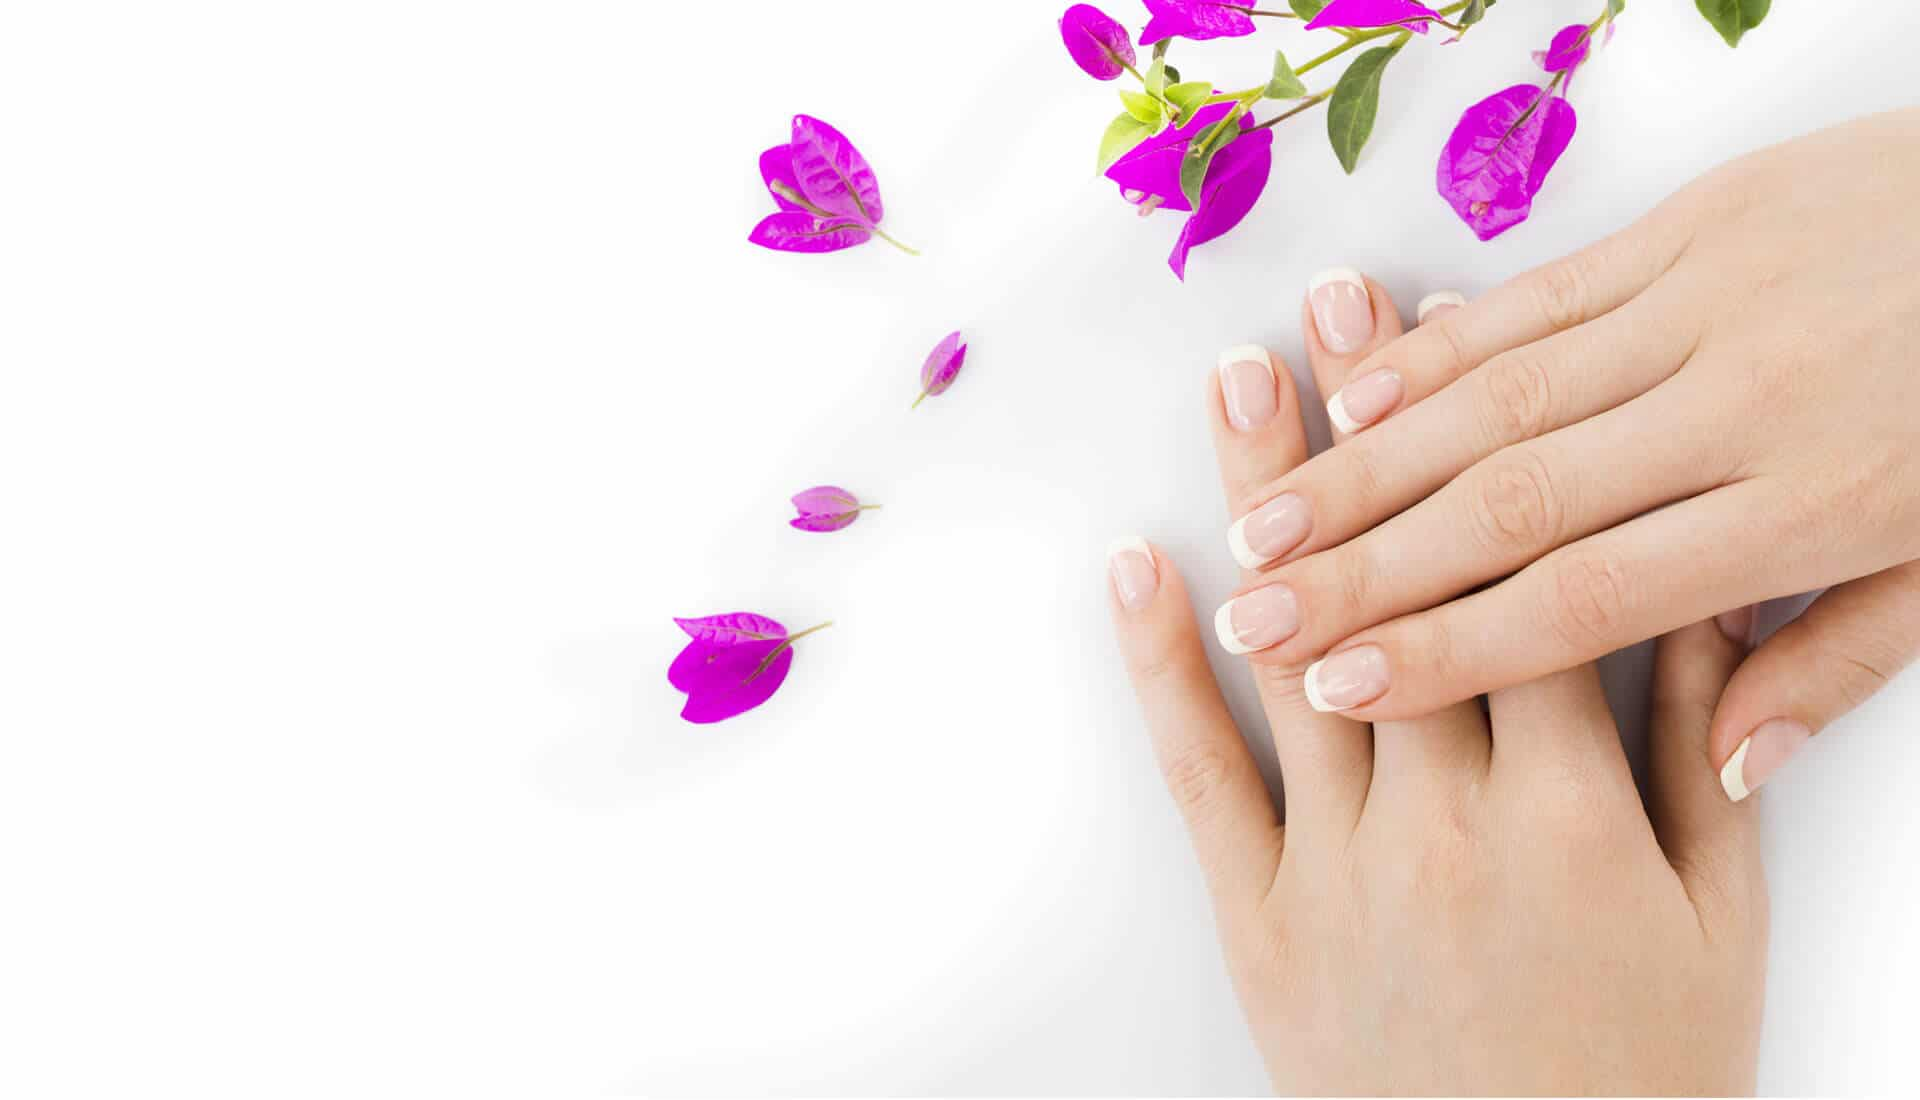 Women show her nails in nail treatment center